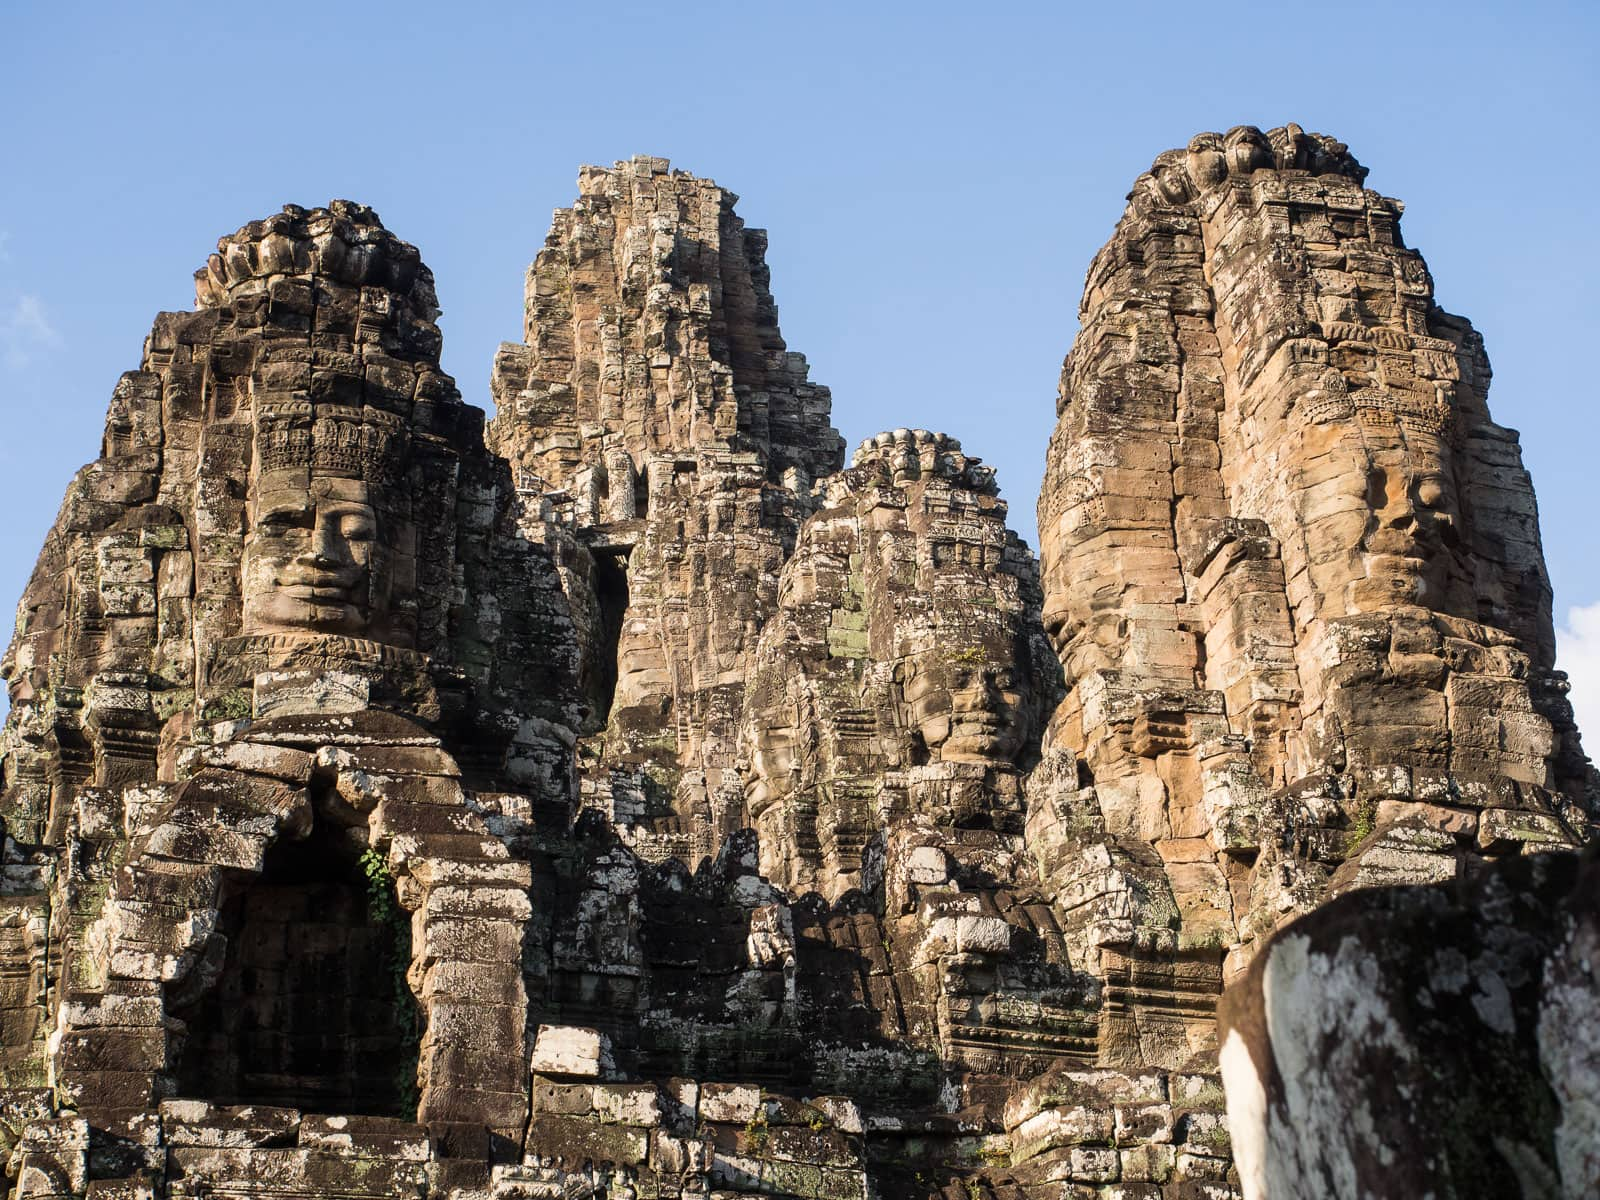 Bayon temple with many peaks